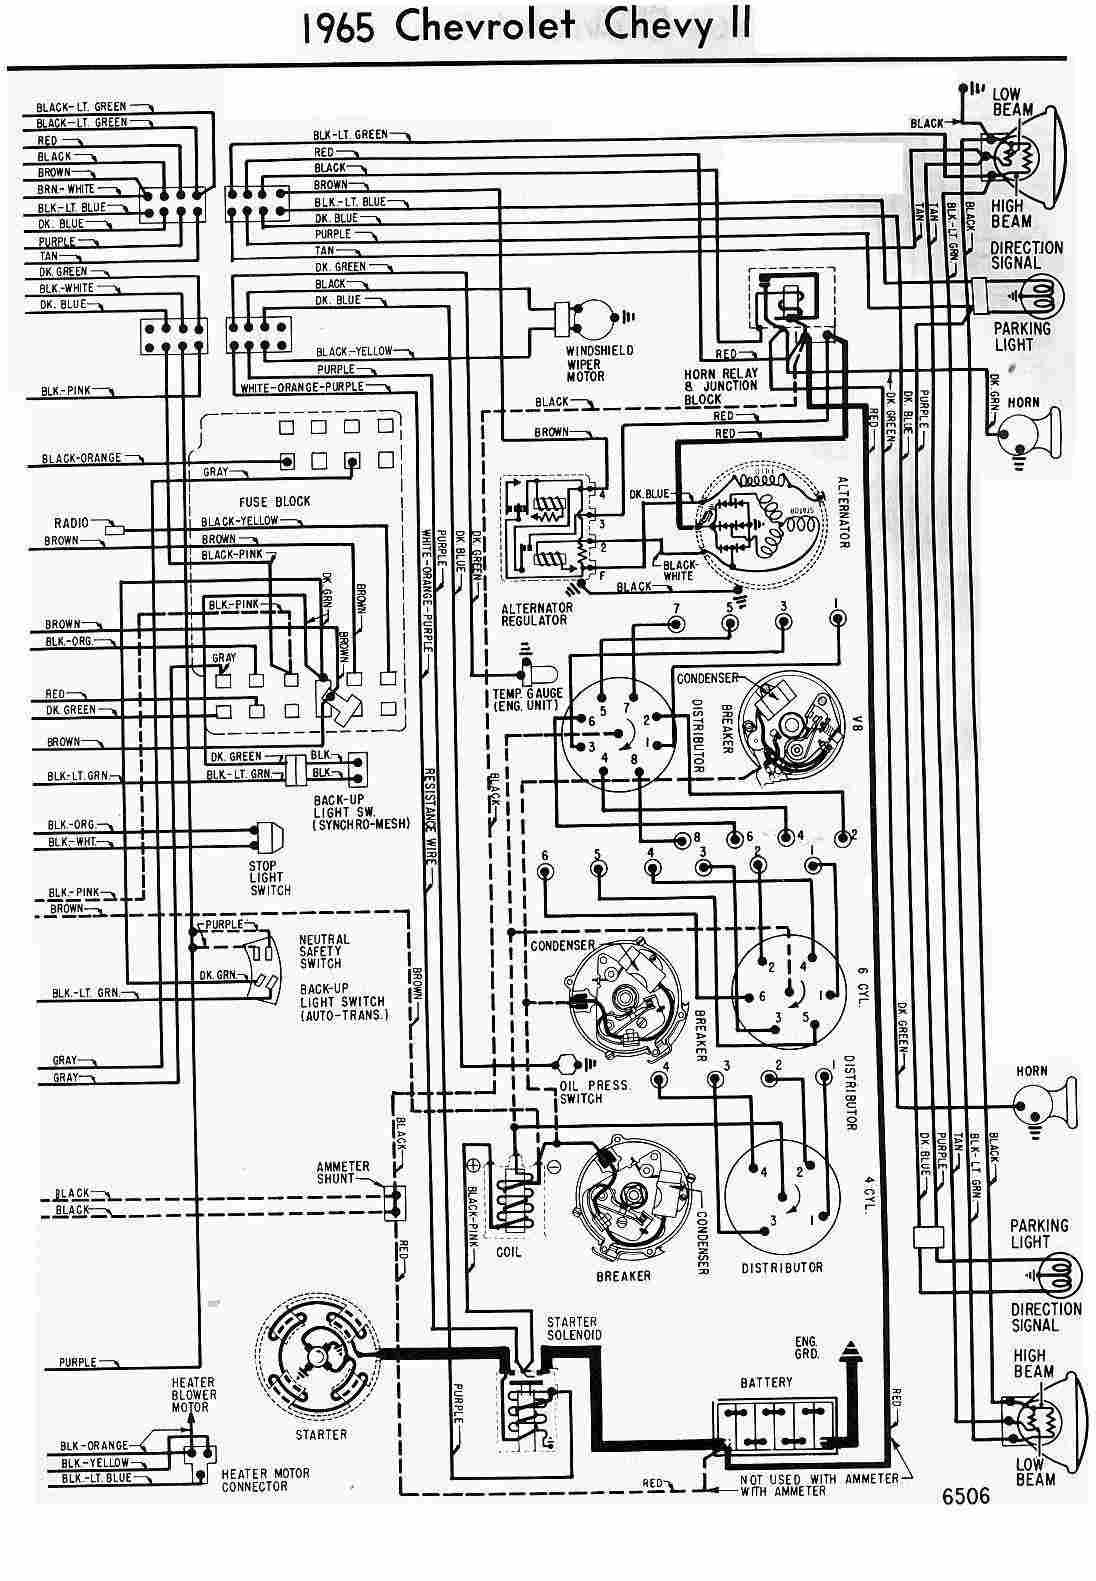 Free Wiring Diagram Download House Symbols Isuzu Diagrams 1964 Chevy Malibu Heater U2022 Rh Msblog Co For